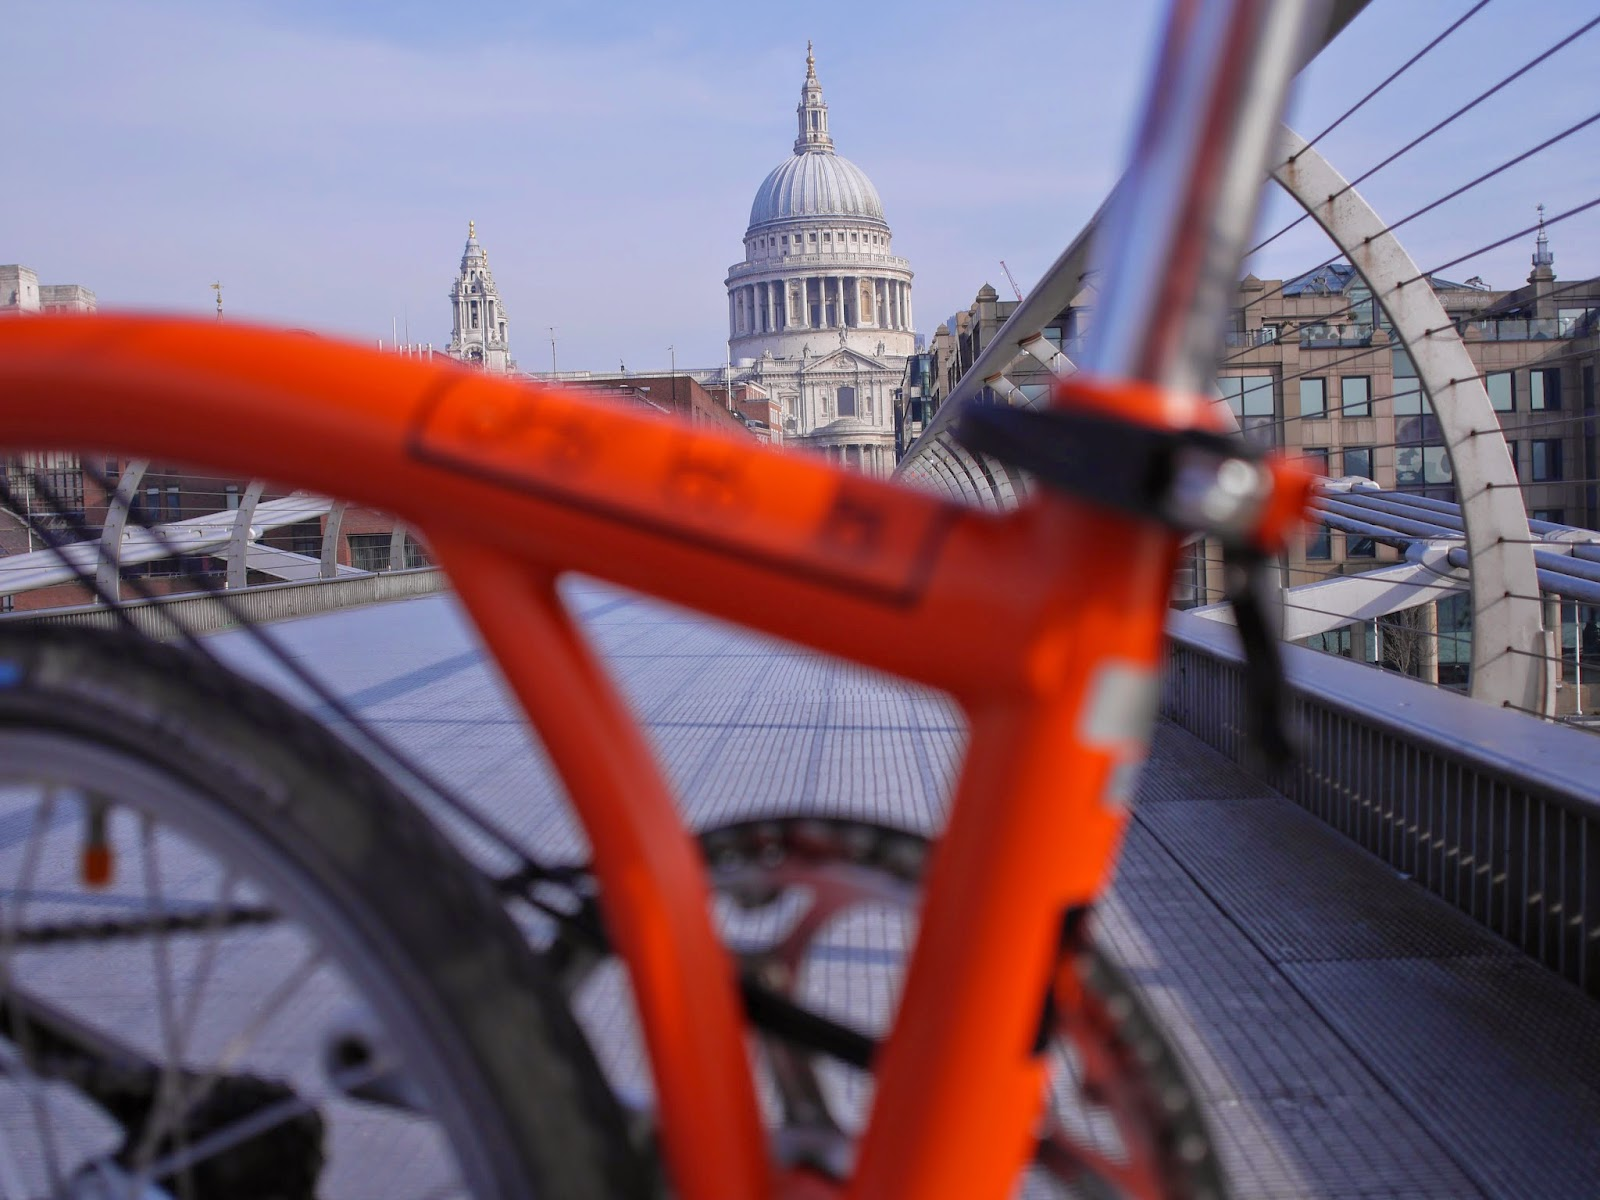 My Orange Brompton November 2014 Cateye Center Fork Bracket For You May Well Have Visited St Pauls Cathedral Example But It Is Your That More Photogenic